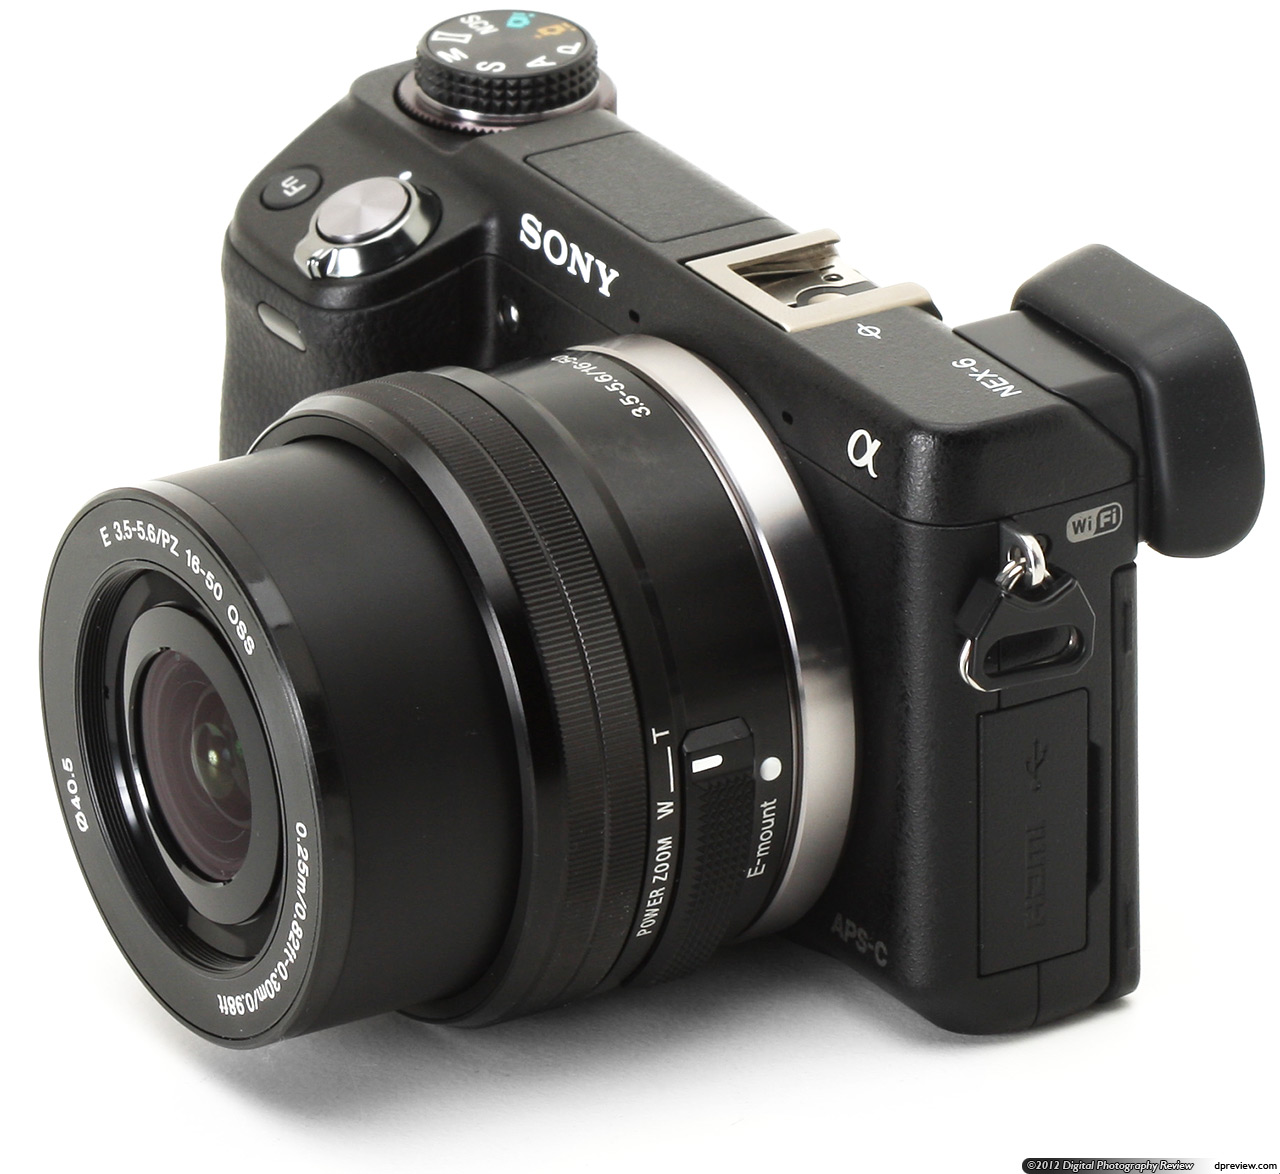 Sony Nex-6 with 16-50mm lens